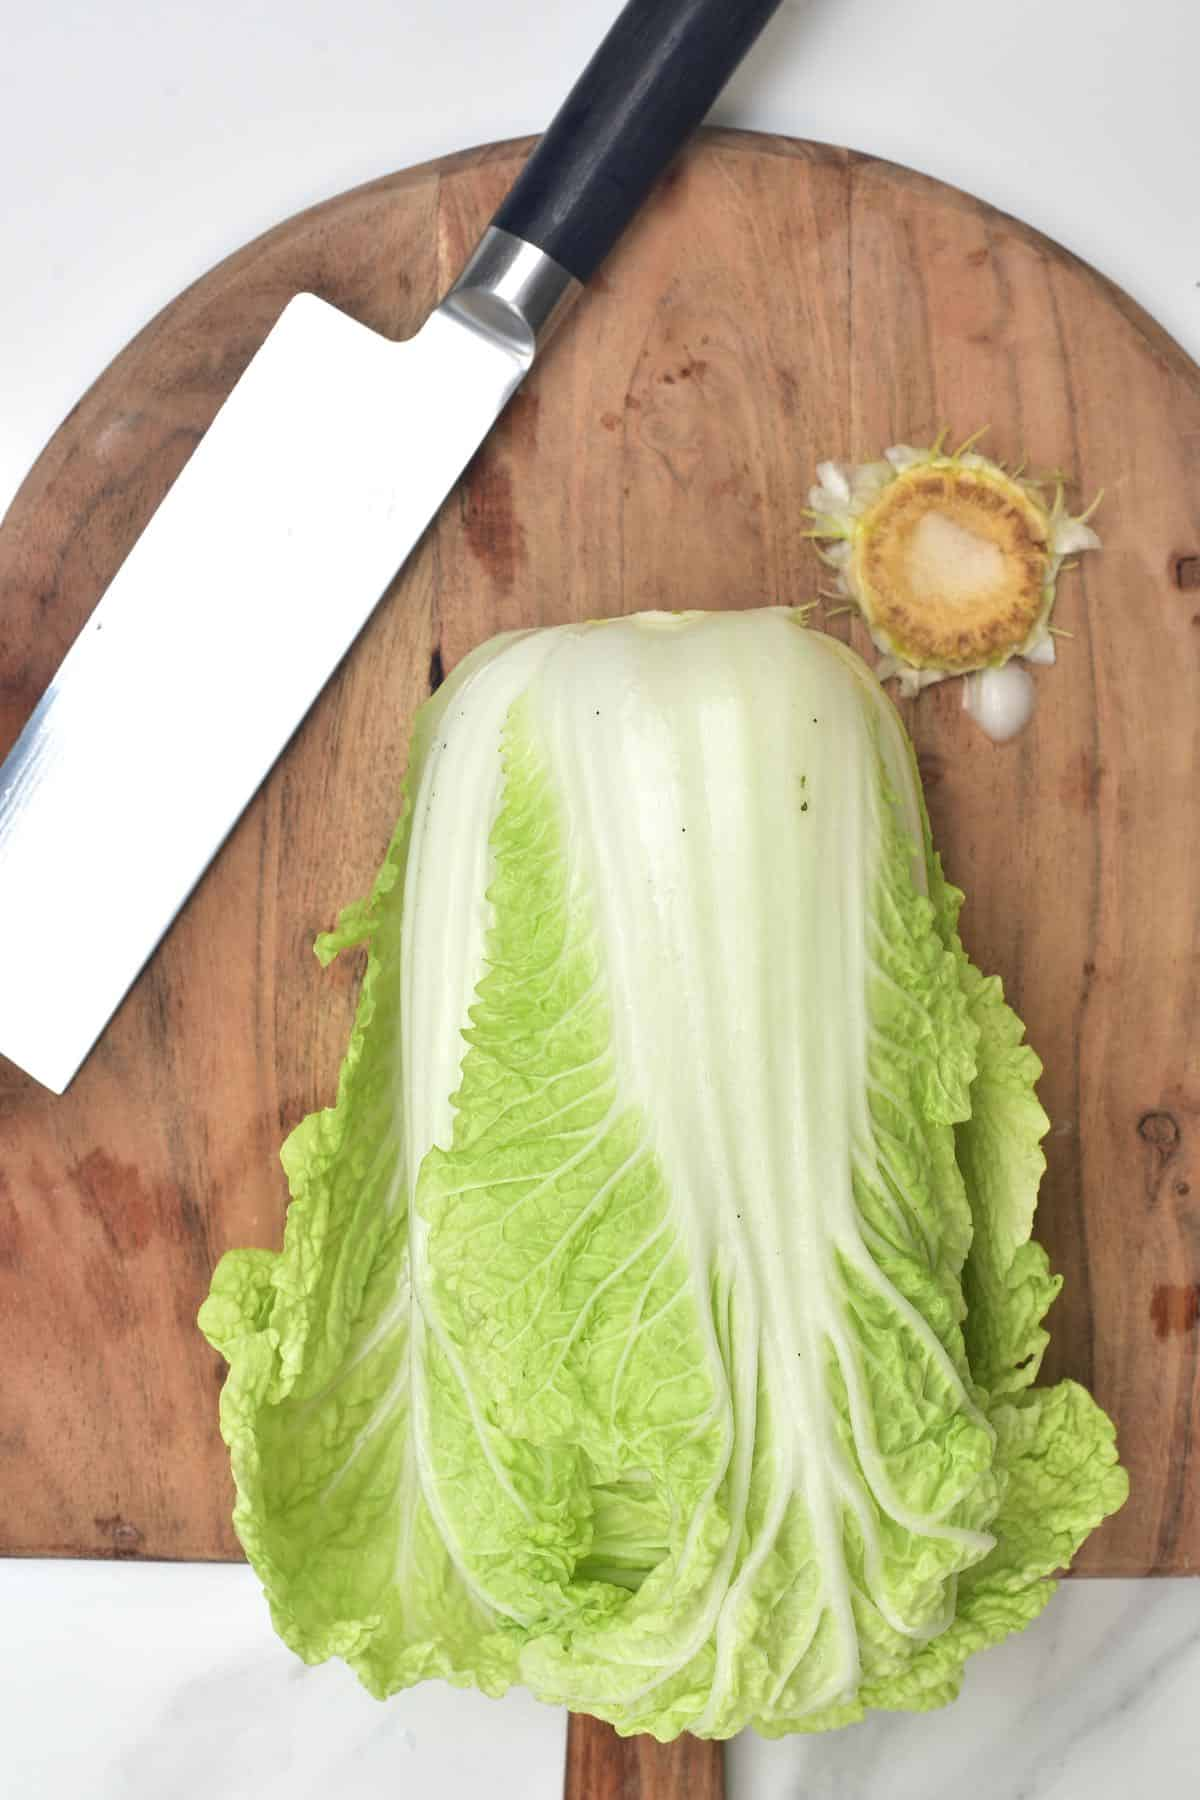 Cutting the stem of cabbage